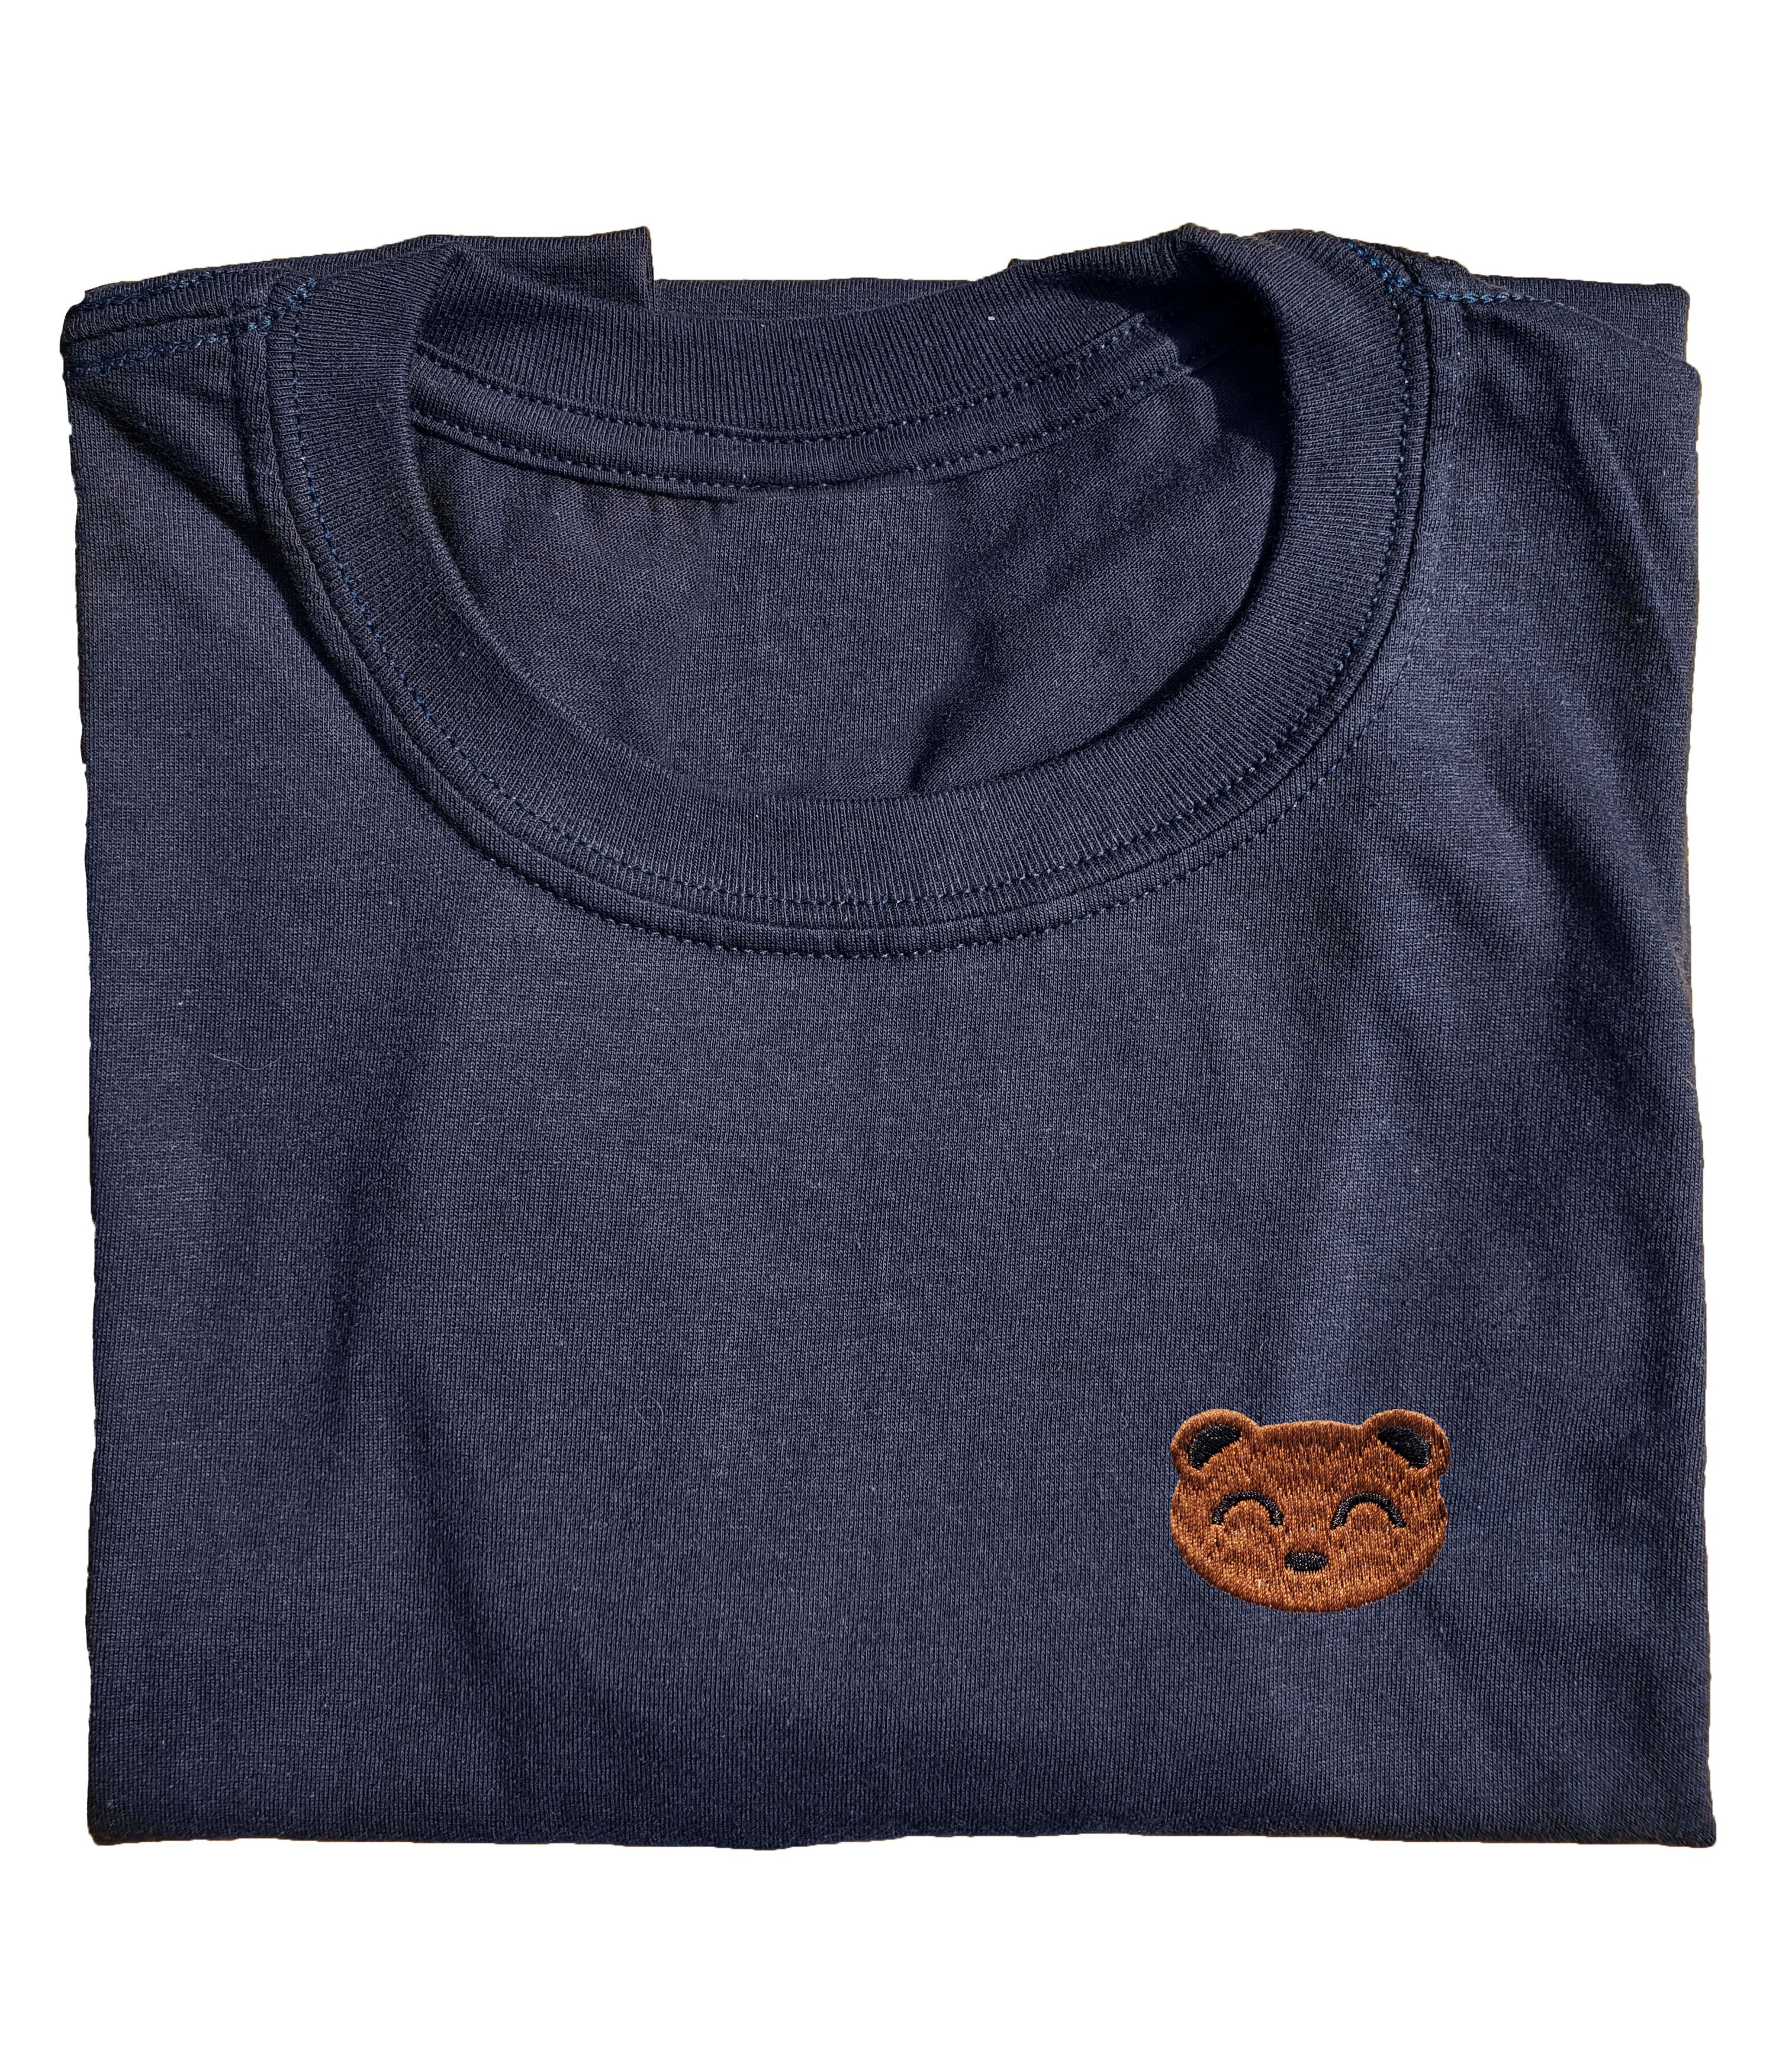 Embroidered Bear SS Tee